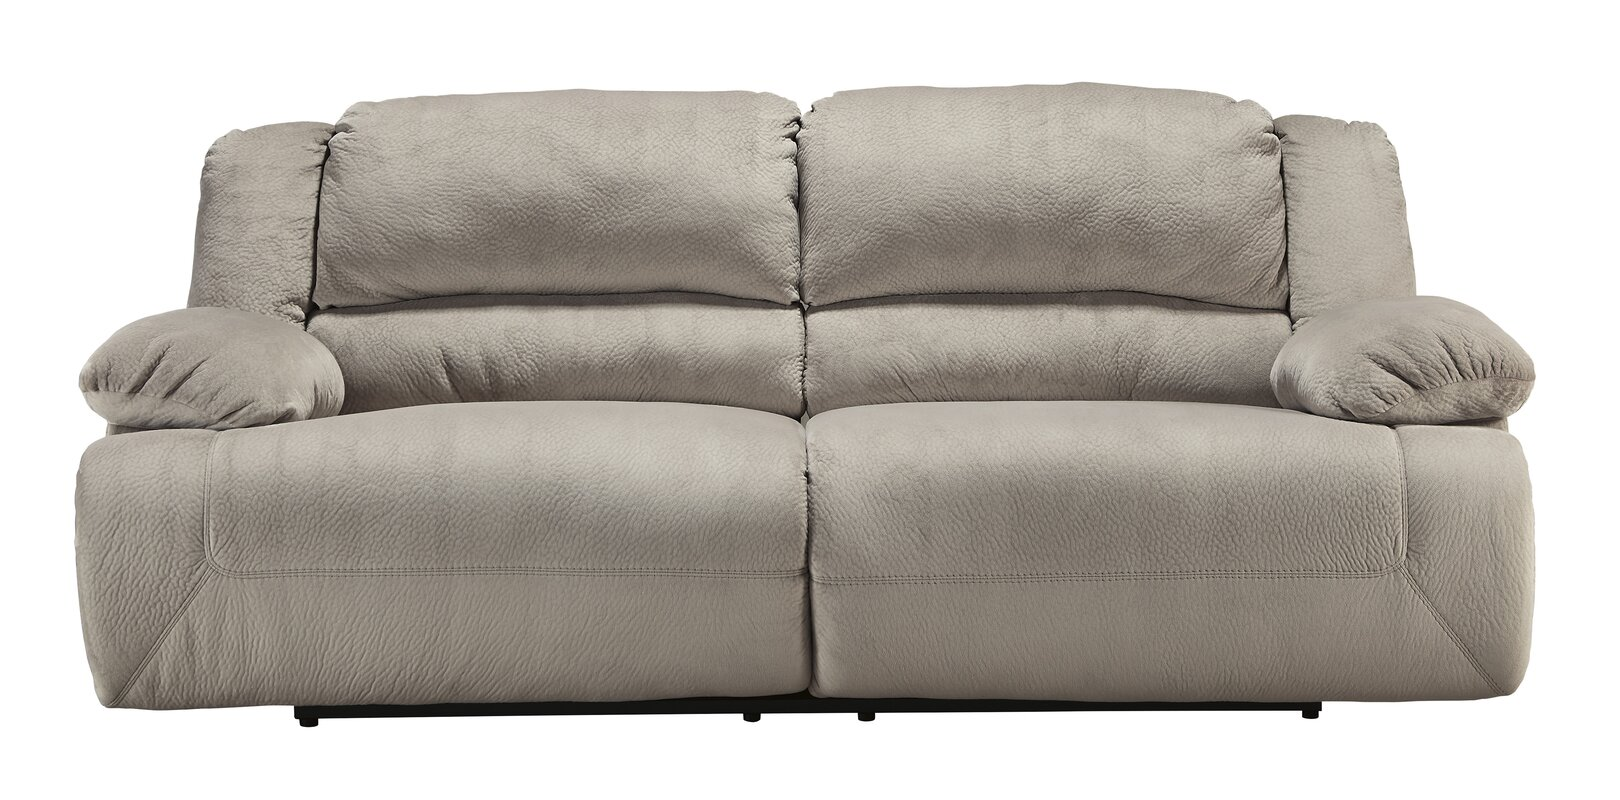 Tolette 2 Seat Reclining Sofa  sc 1 st  Wayfair & Signature Design by Ashley Tolette 2 Seat Reclining Sofa u0026 Reviews ... islam-shia.org